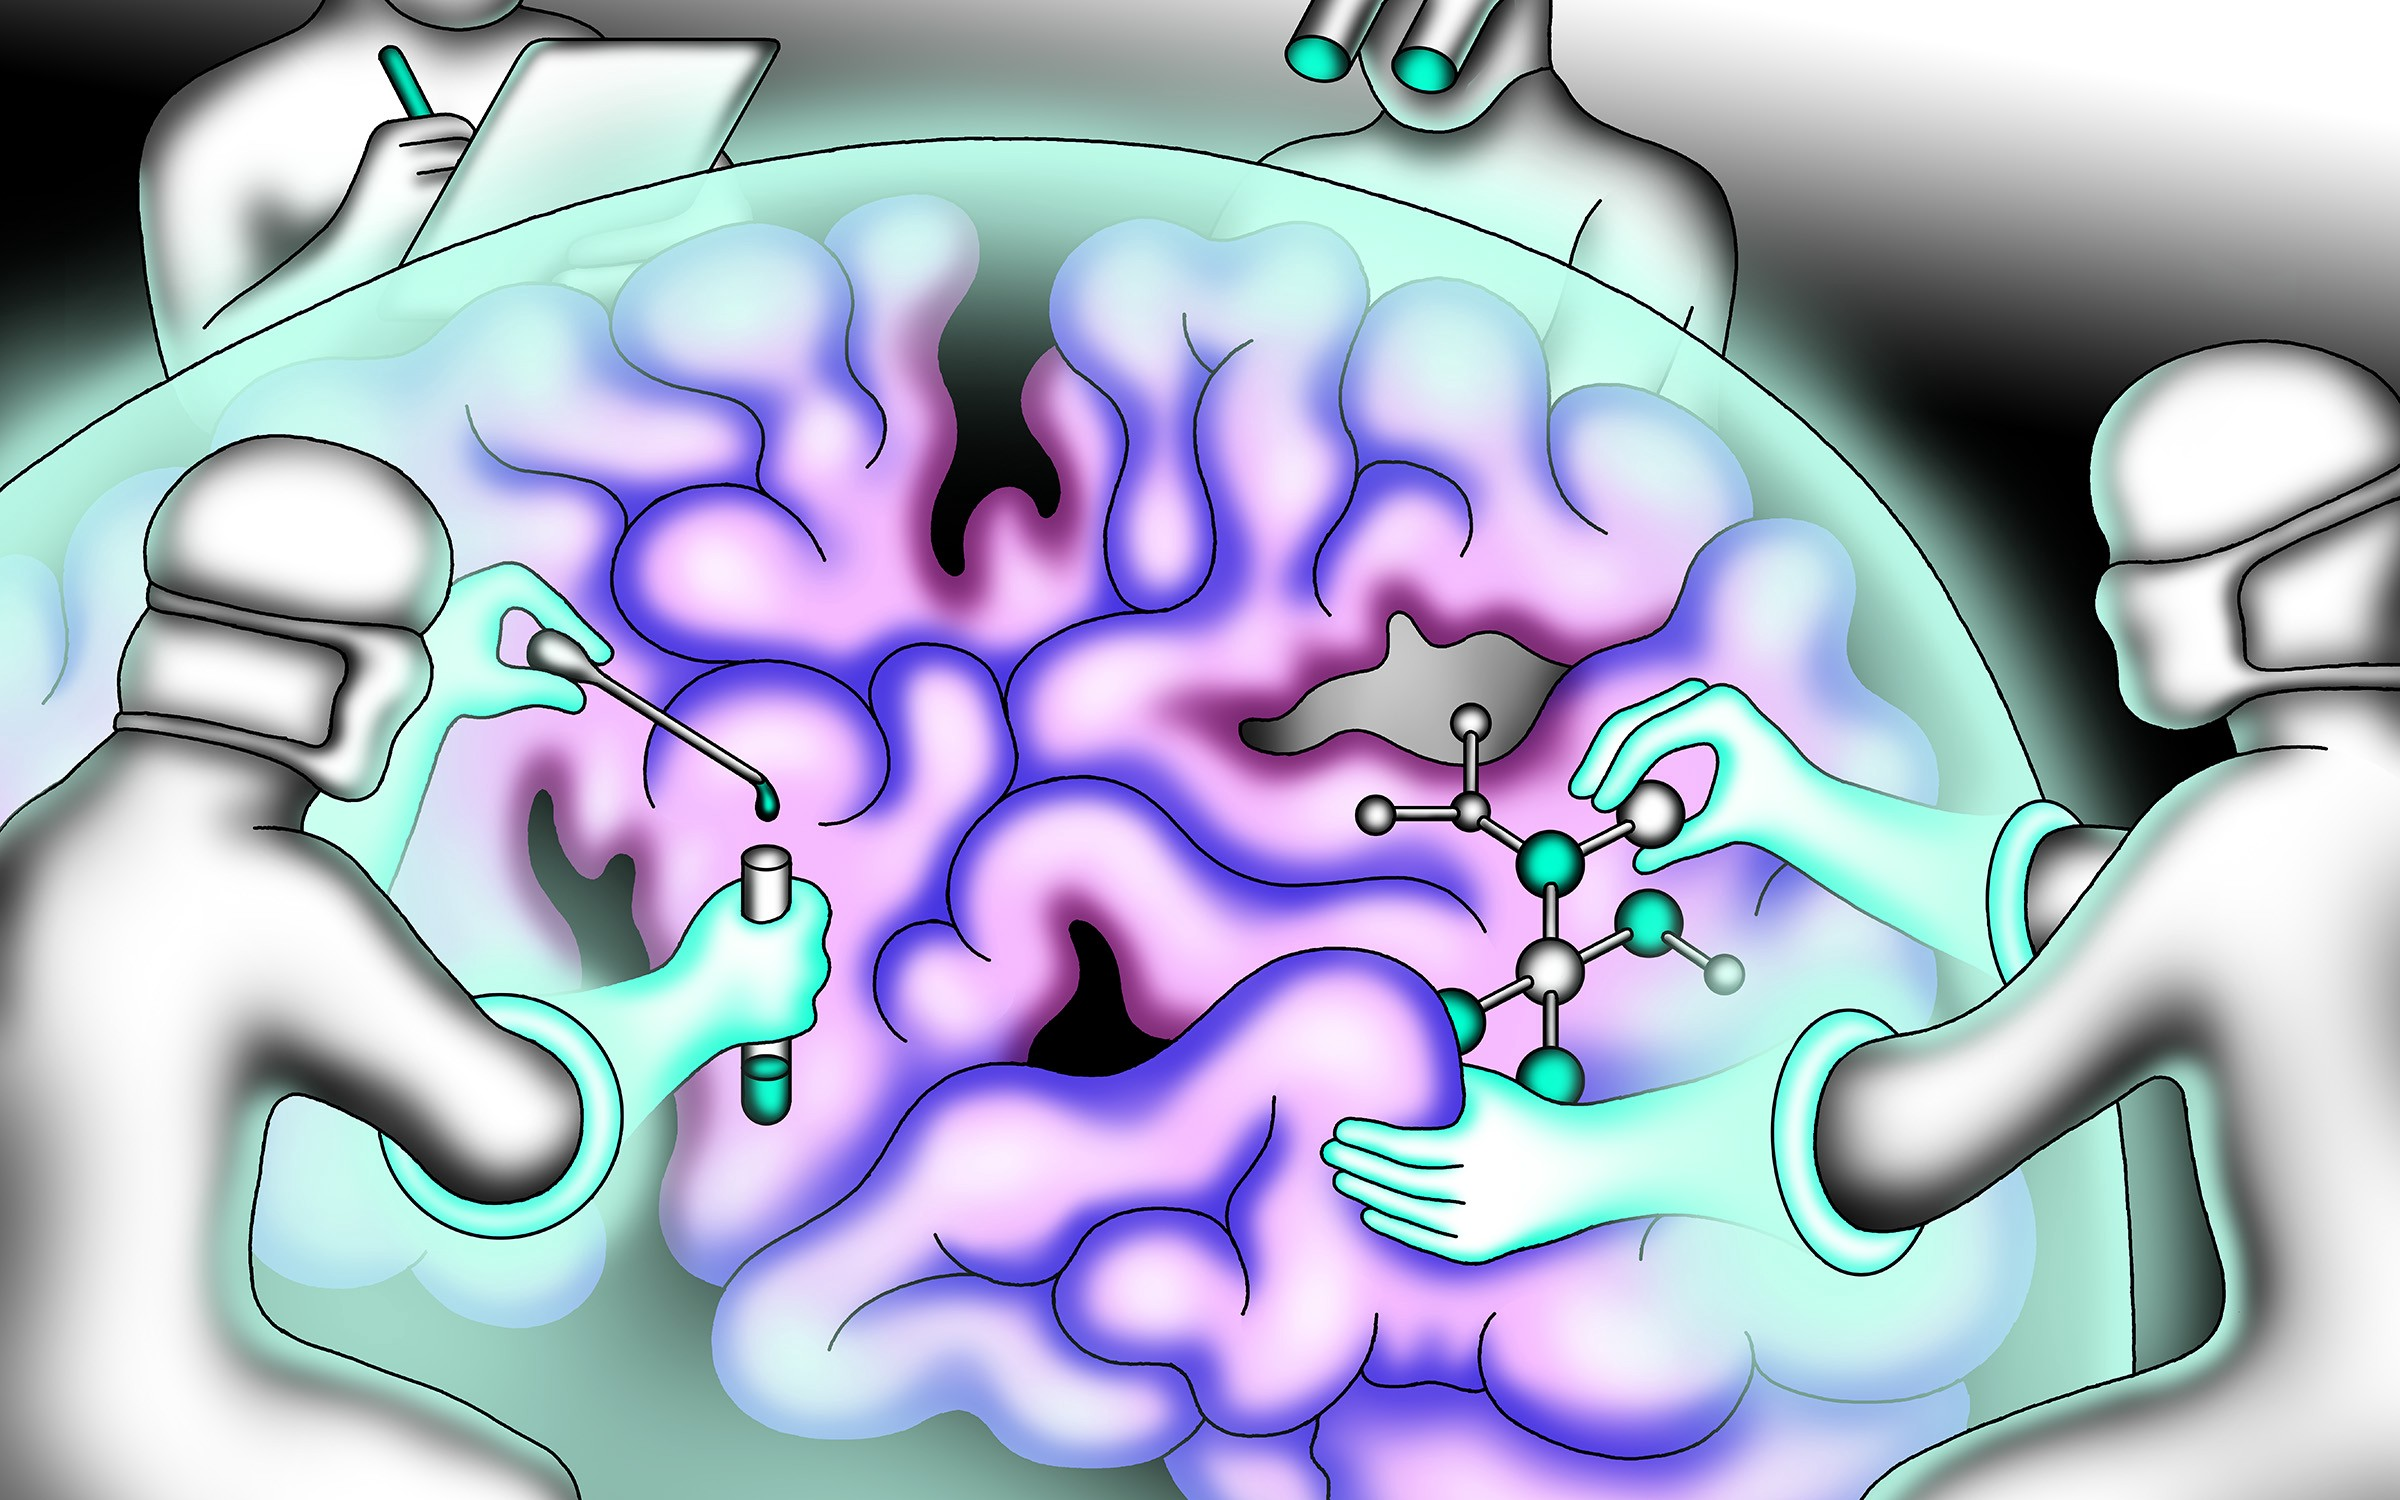 The Future of Alzheimer's Treatment May Be Enlisting the Immune System